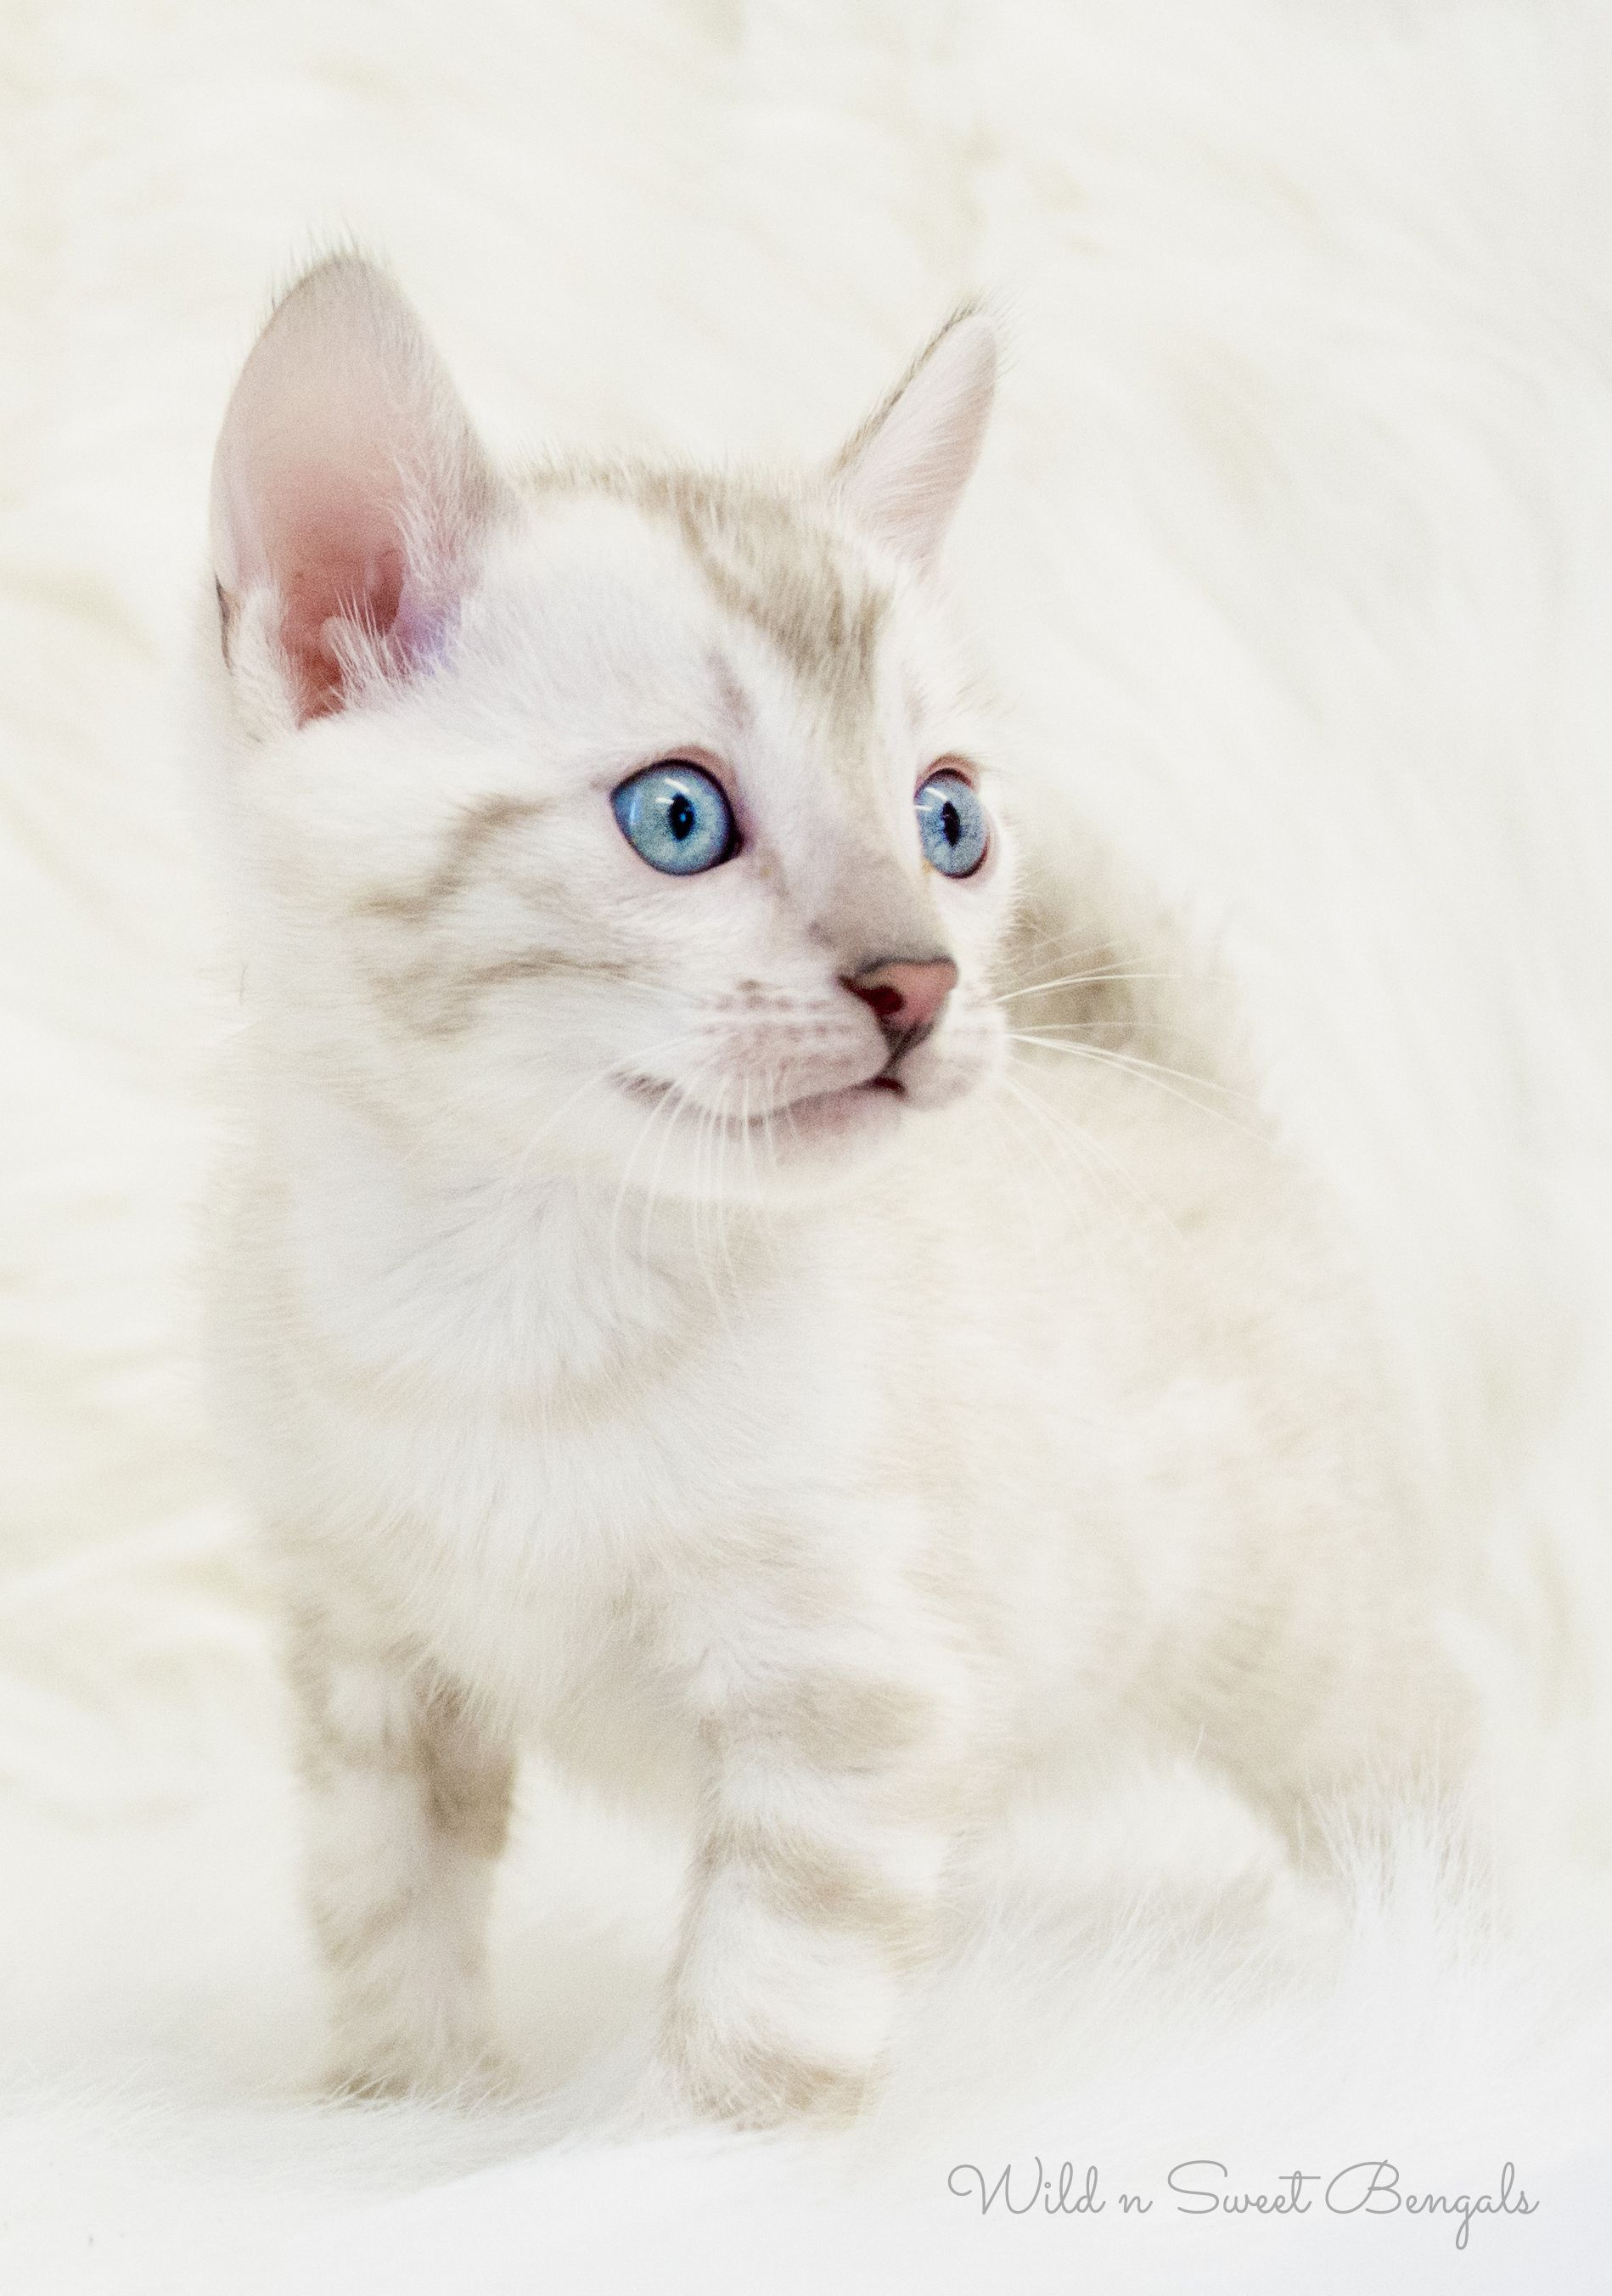 Adorable Silver Snow Bengal Kitten See More Beautiful Bengal Cats And Kittens At Www Wildnsweetbengals Com Bengal Kitten Bengal Cat Bengal Cat Breeders